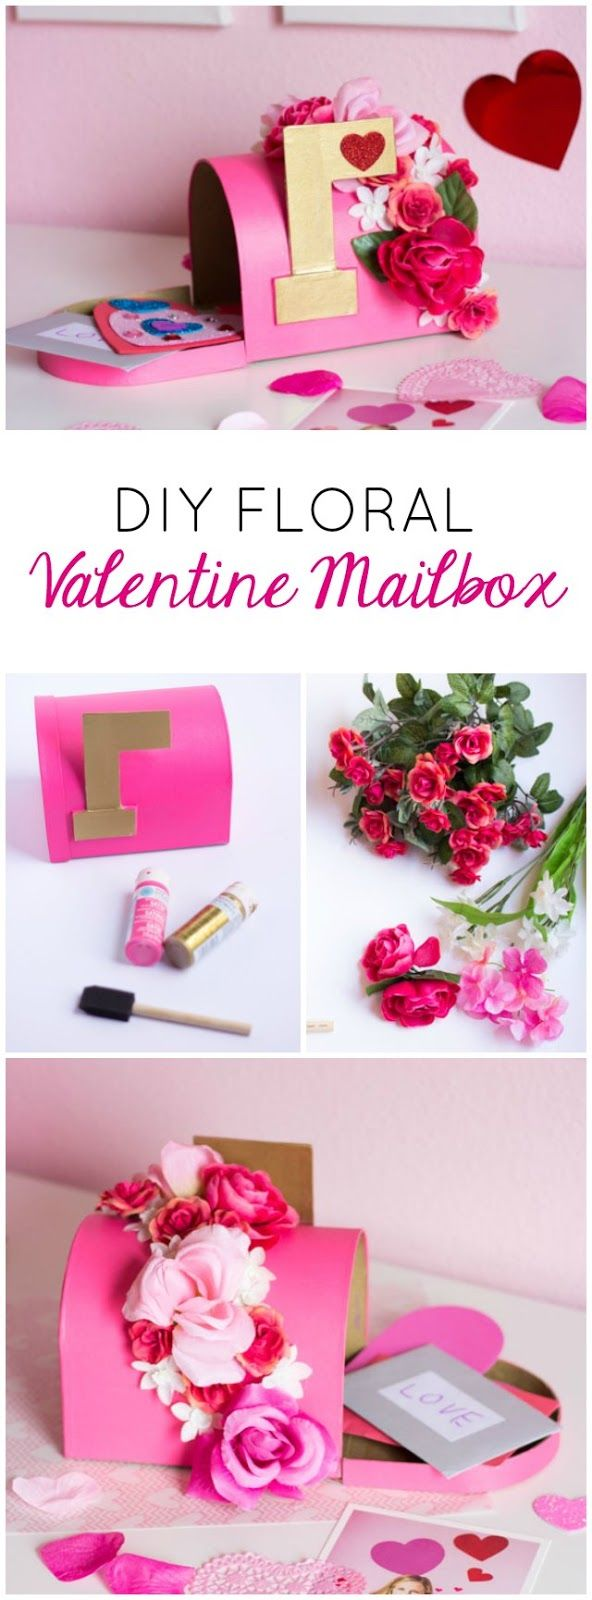 diy floral valentine mailbox diy pinterest valentinstag valentinstag geschenk f r ihn und. Black Bedroom Furniture Sets. Home Design Ideas